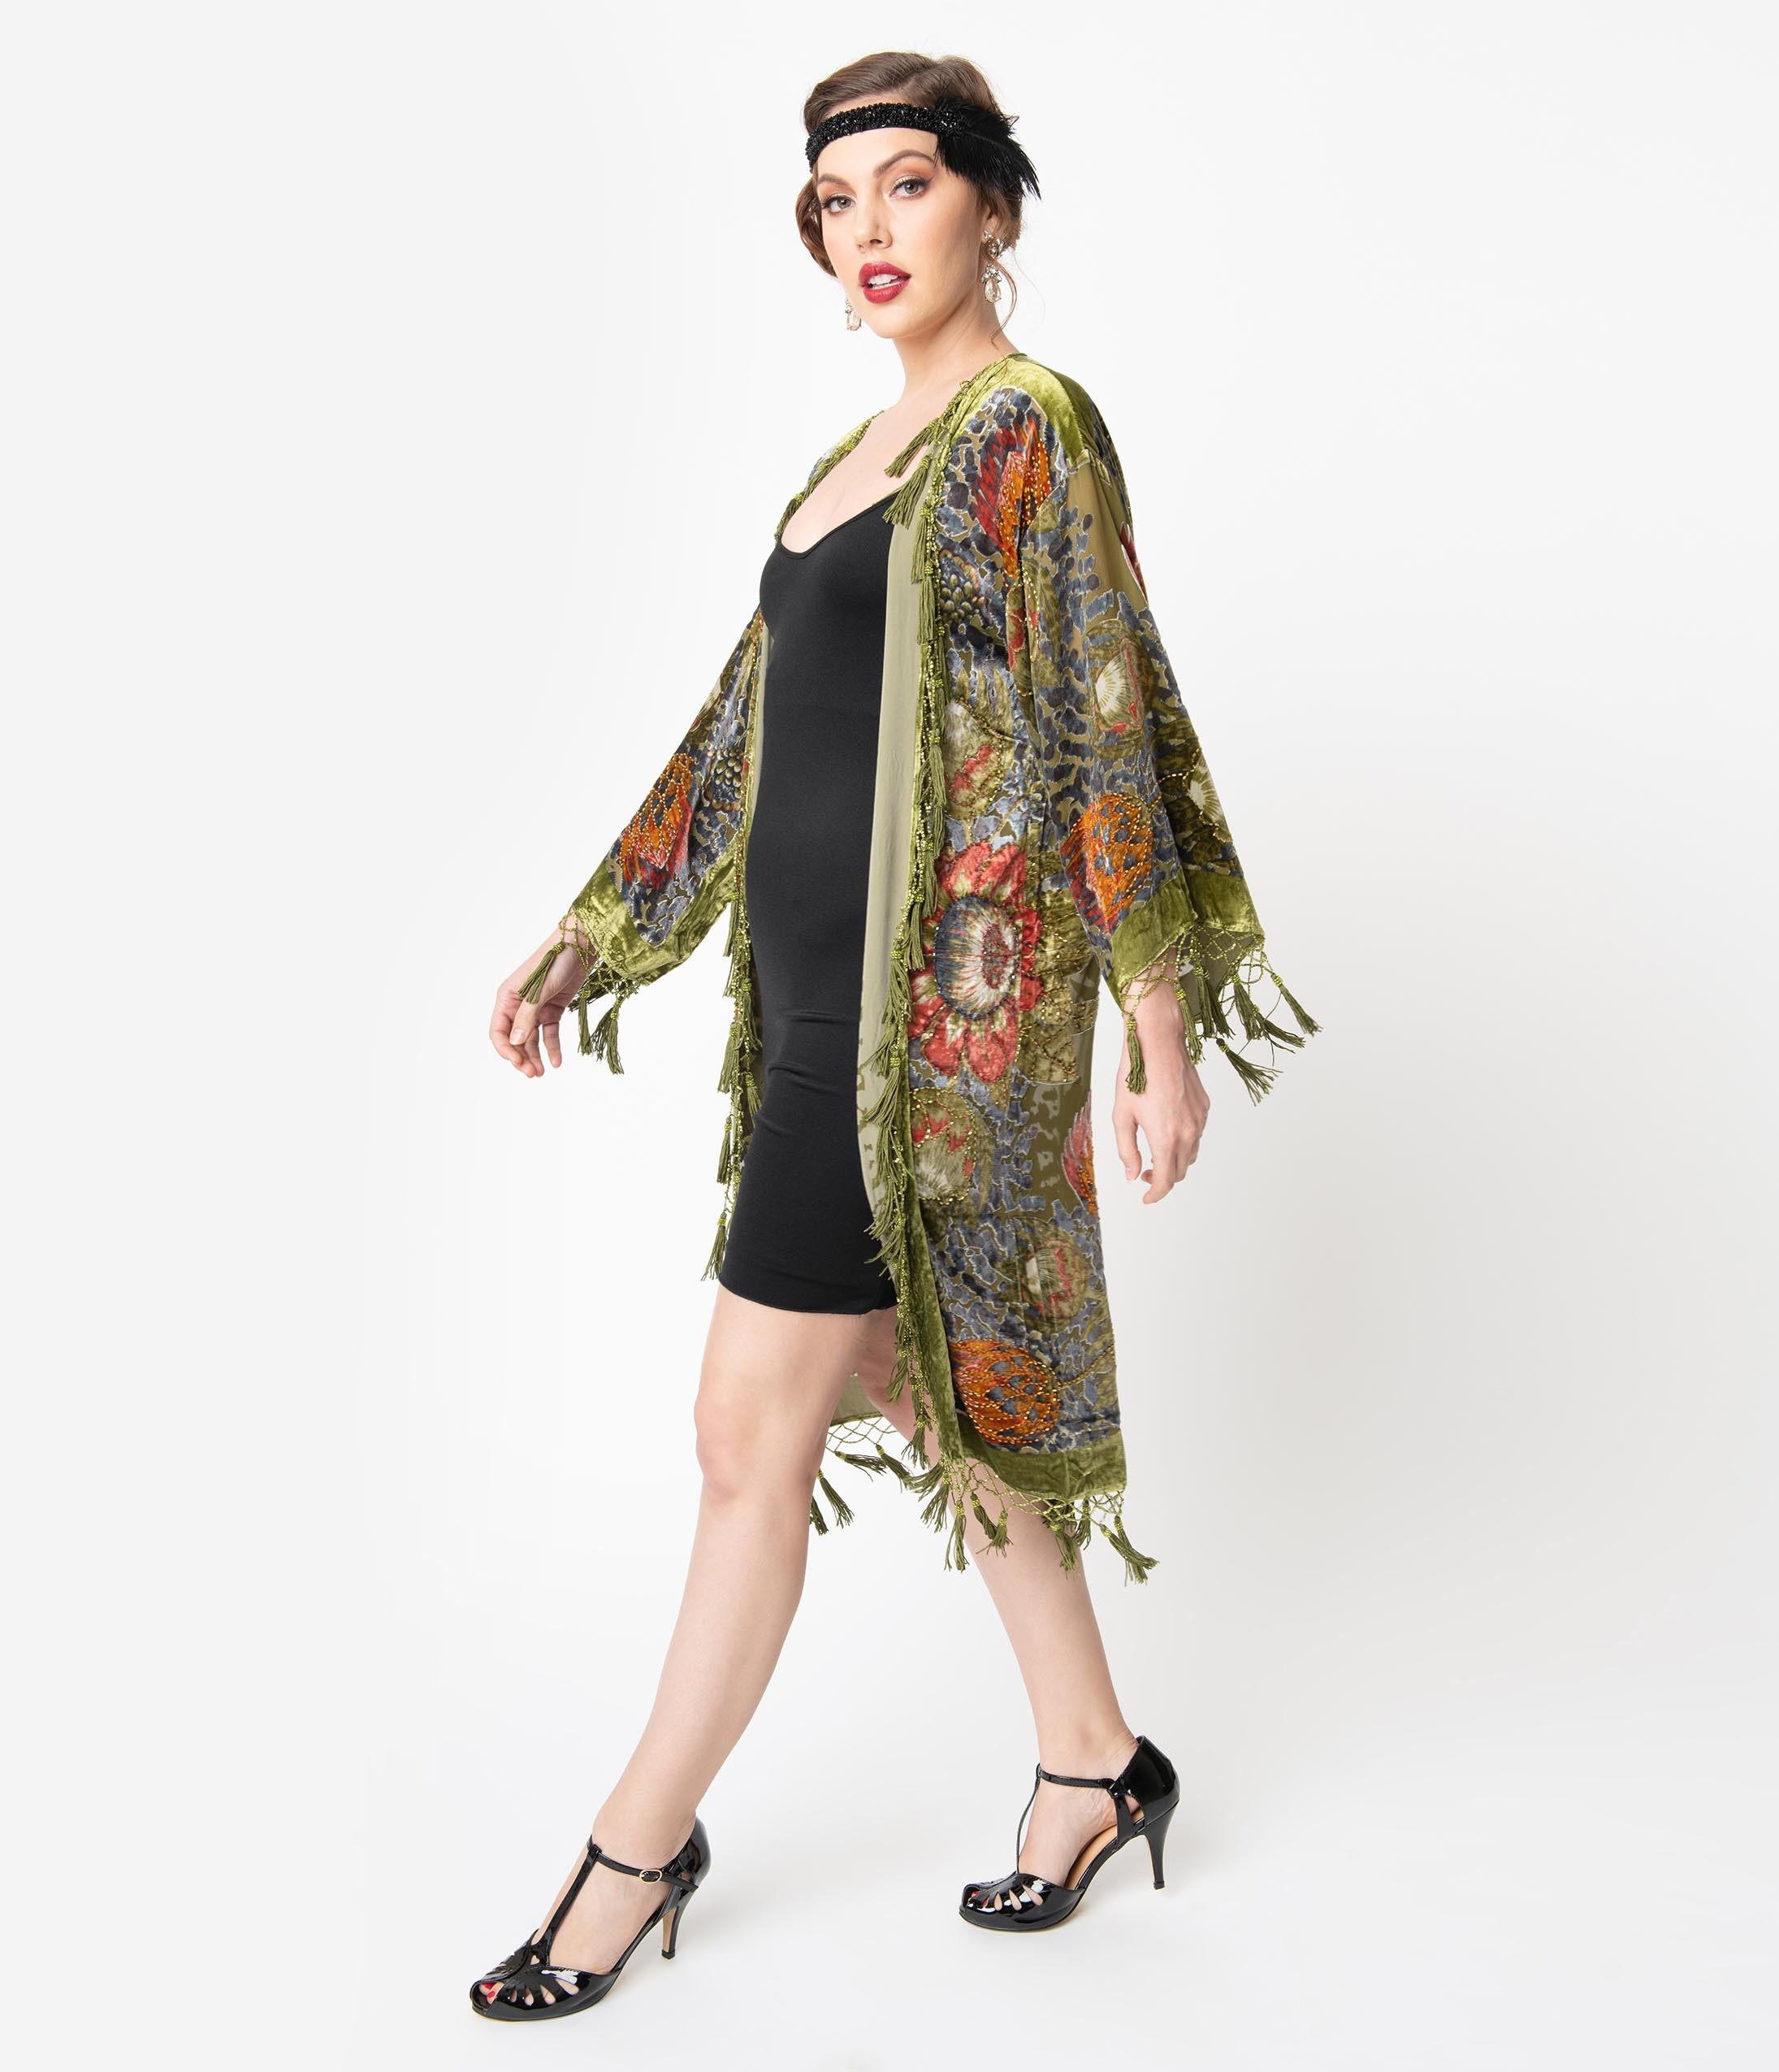 Vintage Coats & Jackets | Retro Coats and Jackets Vintage Style Olive Green Tassel Floral Devore Velvet Beaded Flapper Coat $224.00 AT vintagedancer.com